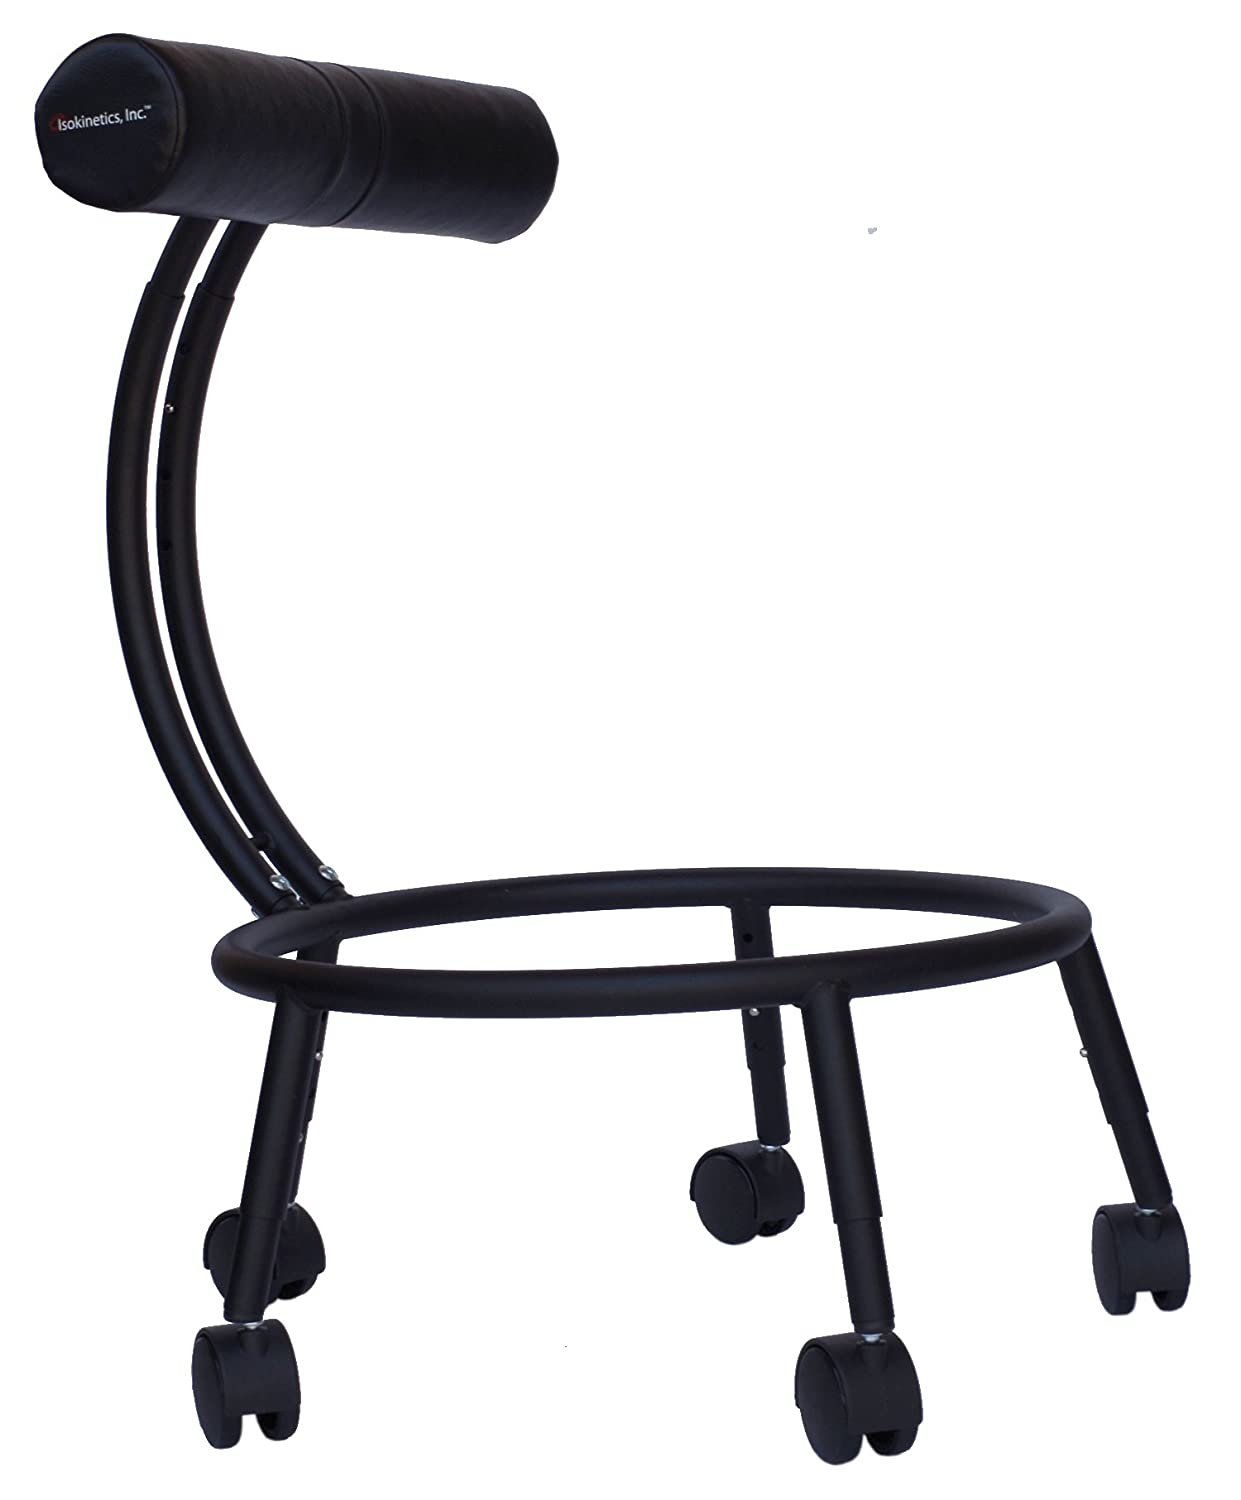 Gym Ball Chair Base 9 Best Balance Ball Chairs For